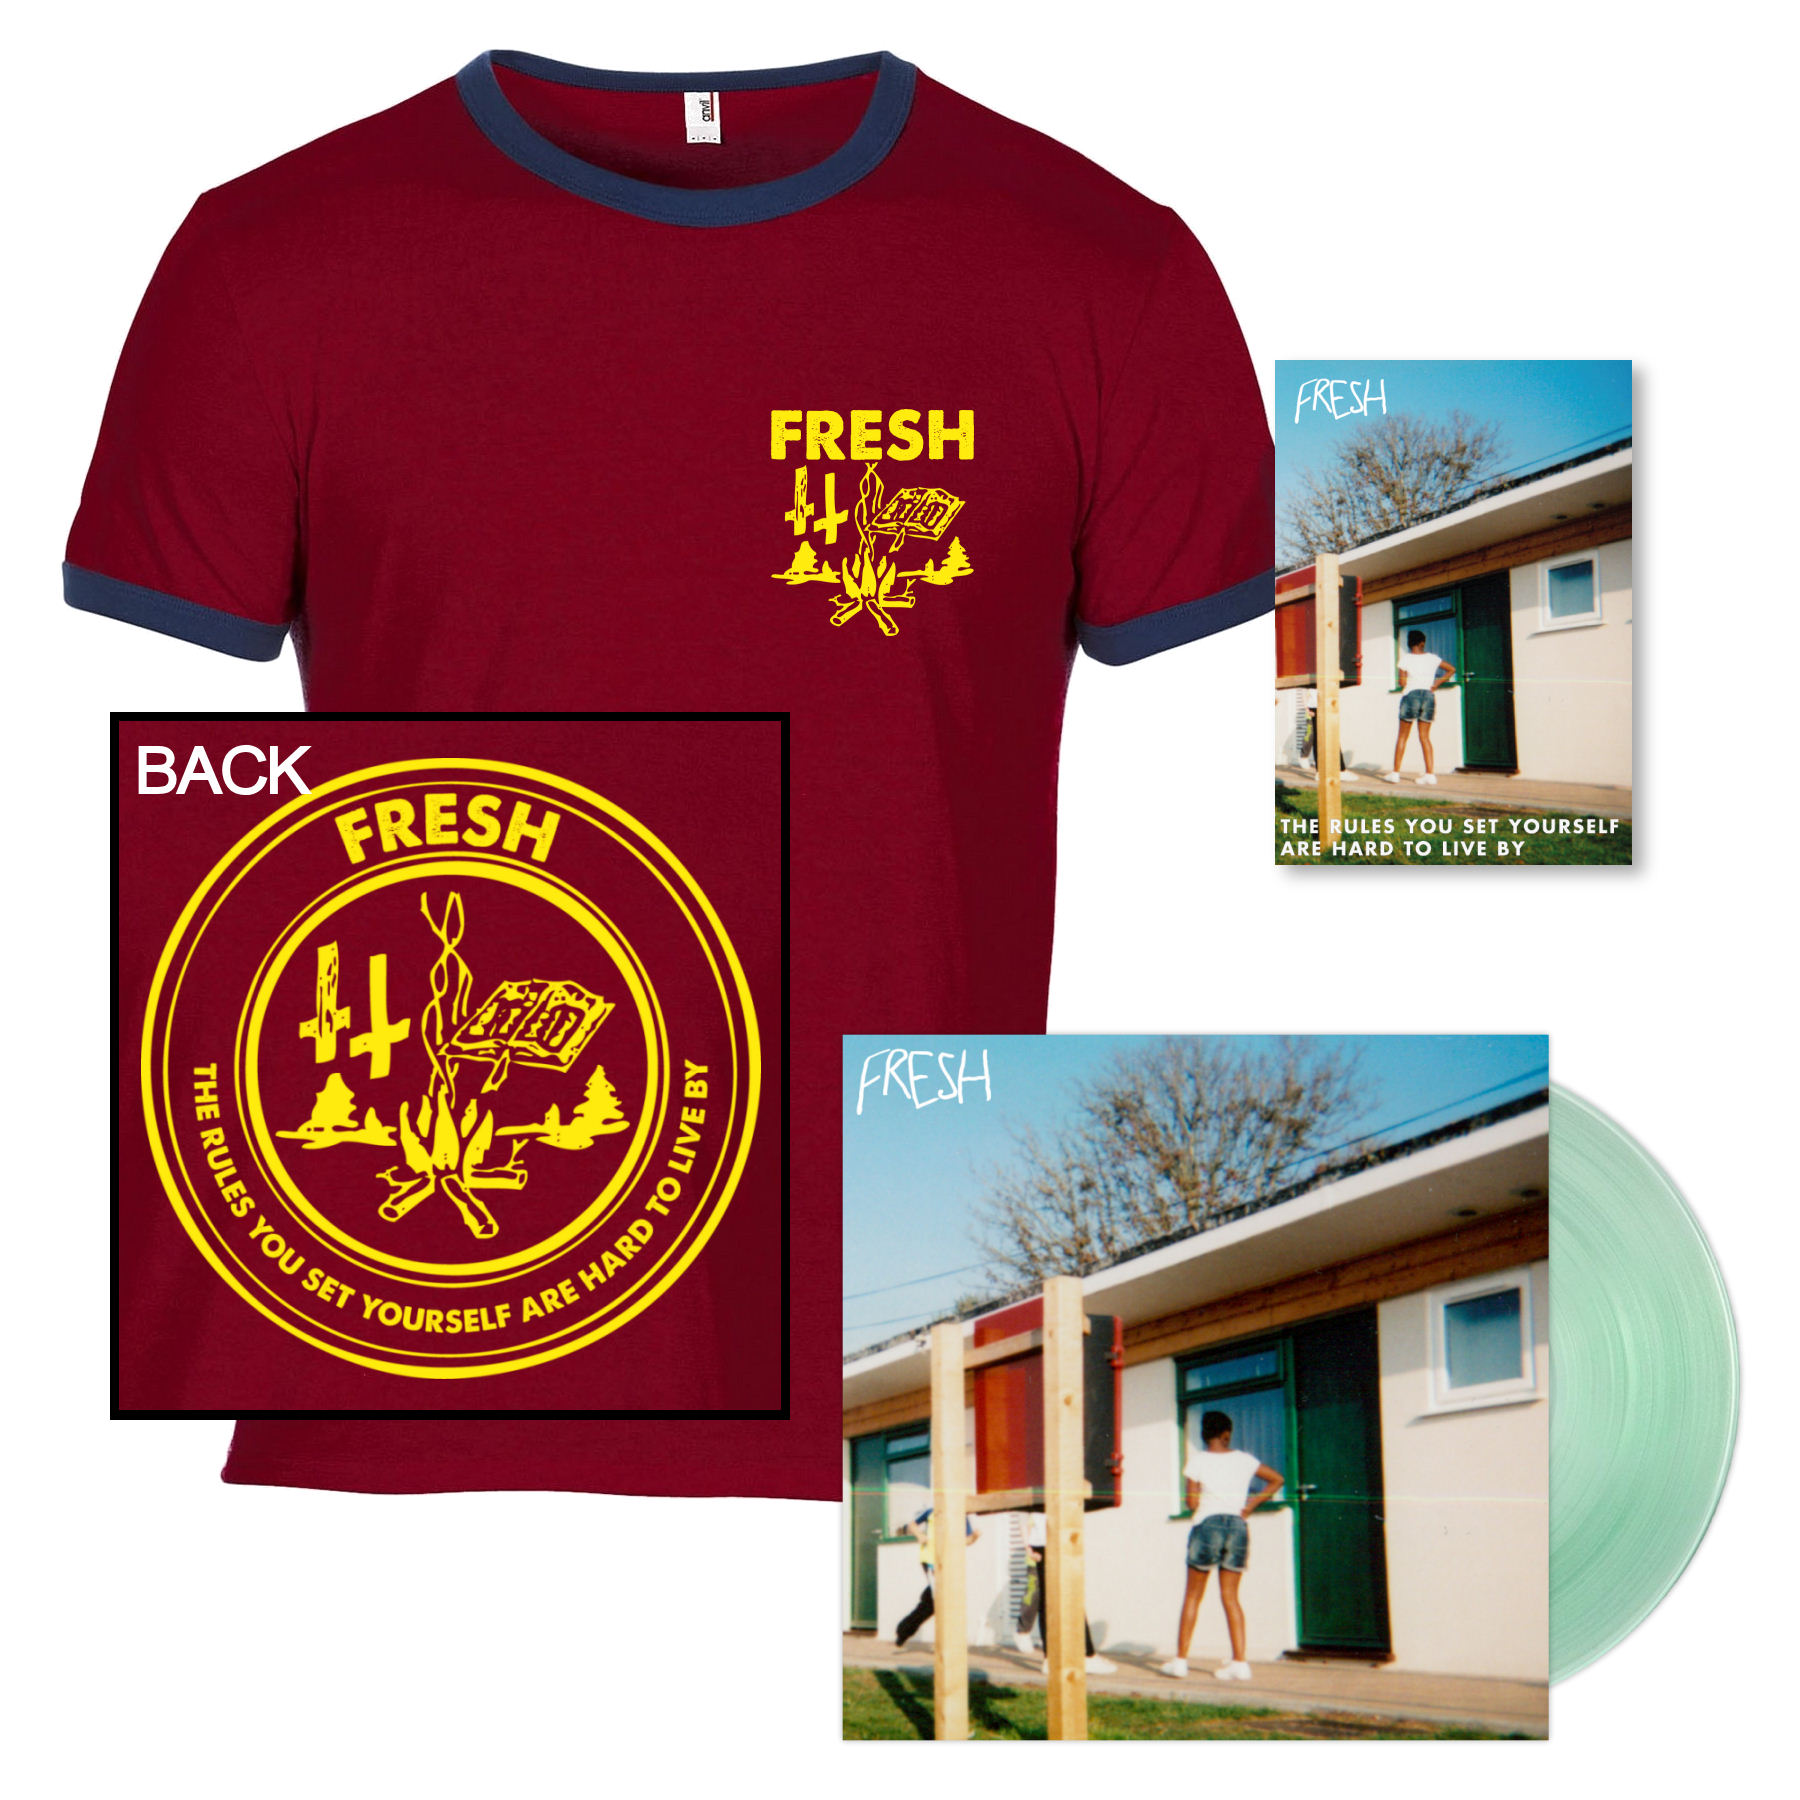 Fresh - s/t LP / CD